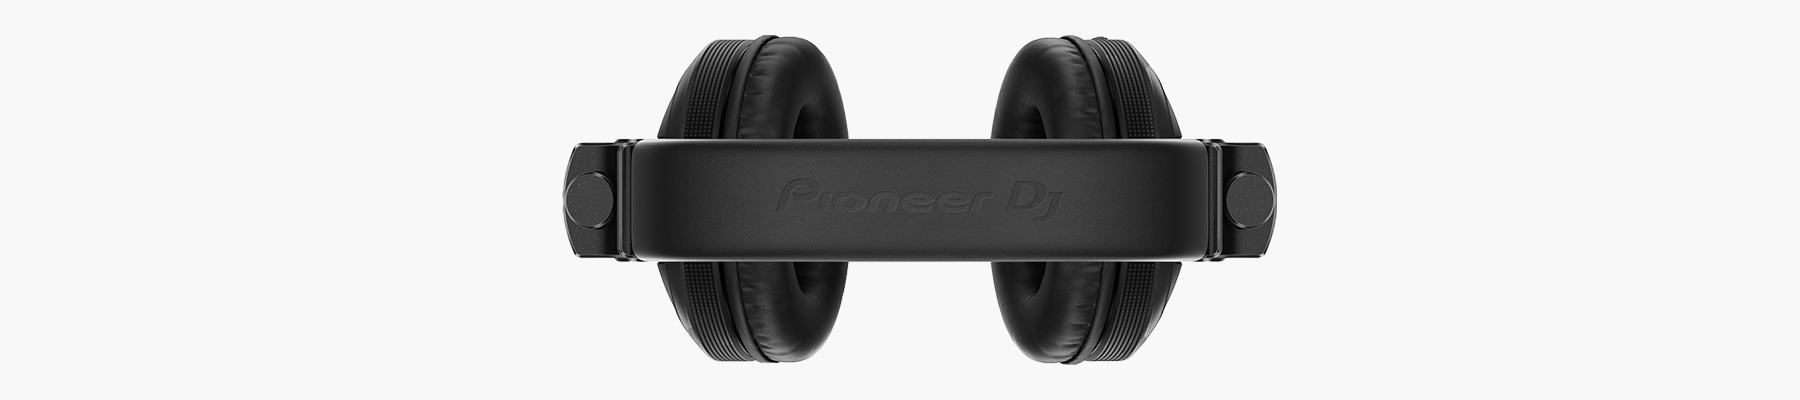 "<div class=""brand-intro-section"">